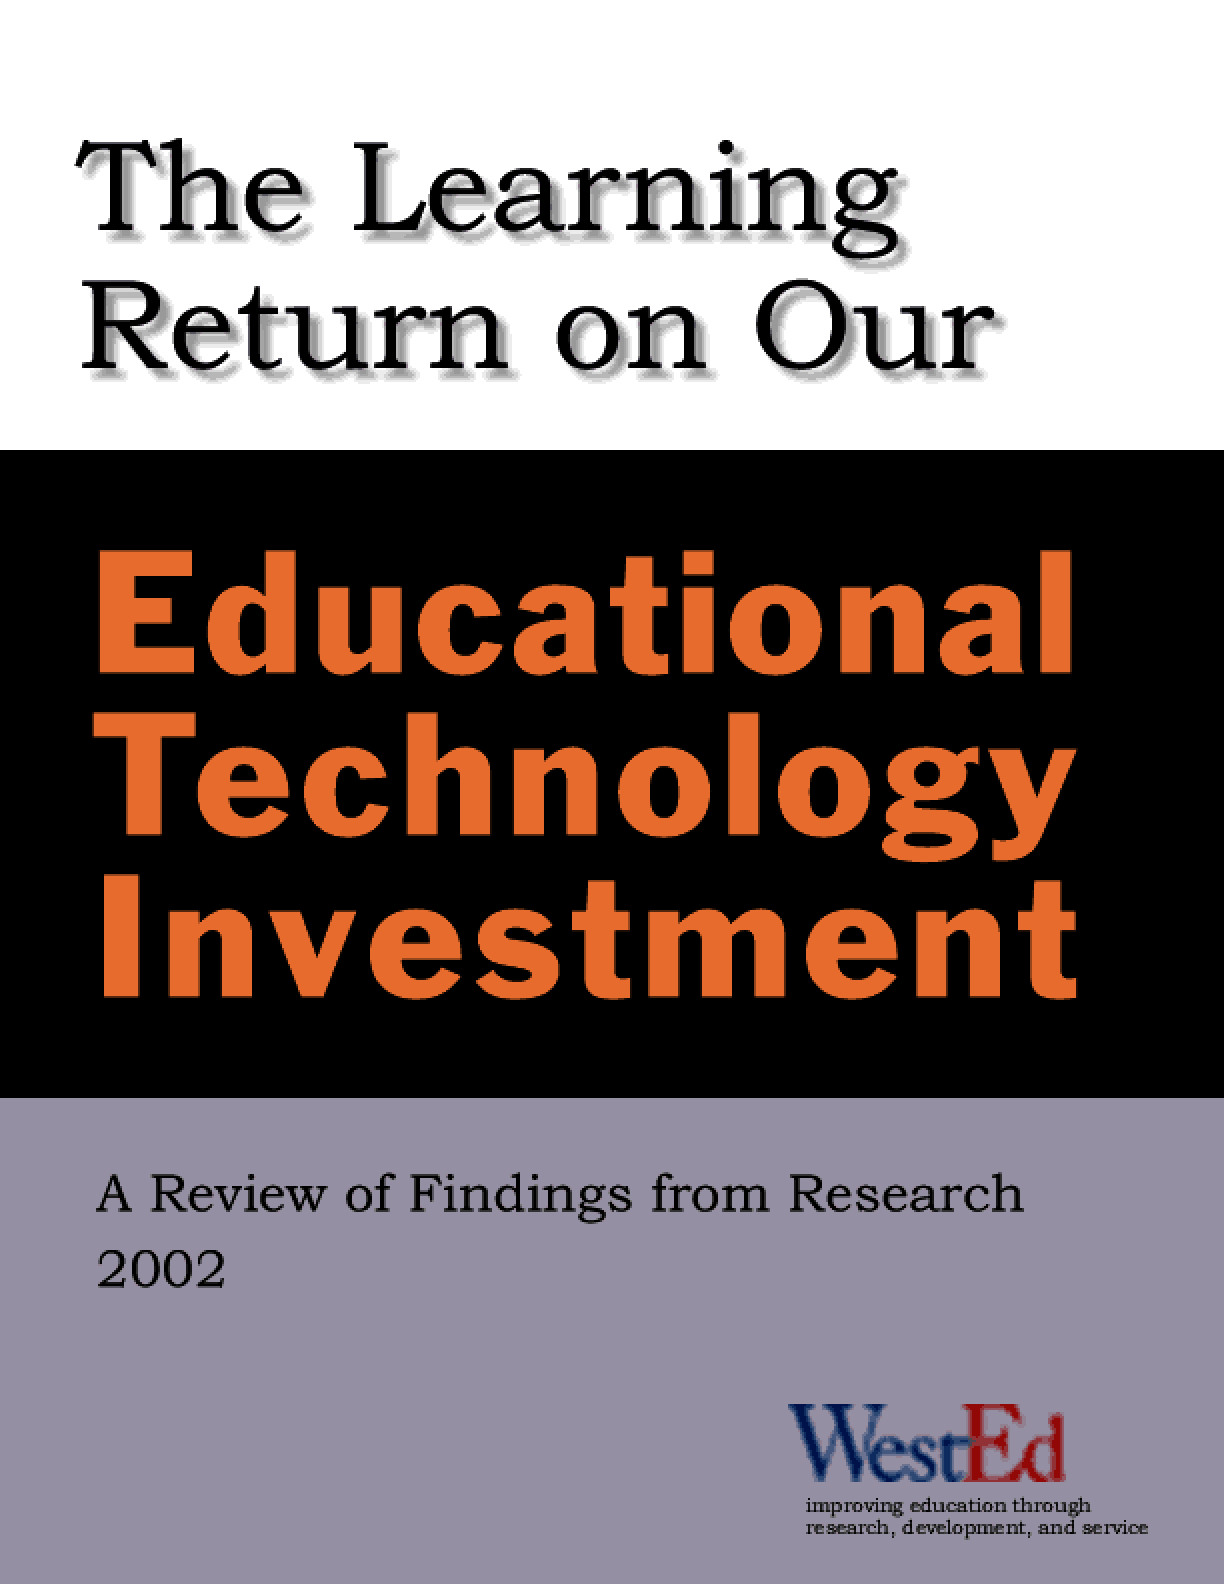 The Learning Return on Our Educational Technology Investment: A Review of Findings from Research